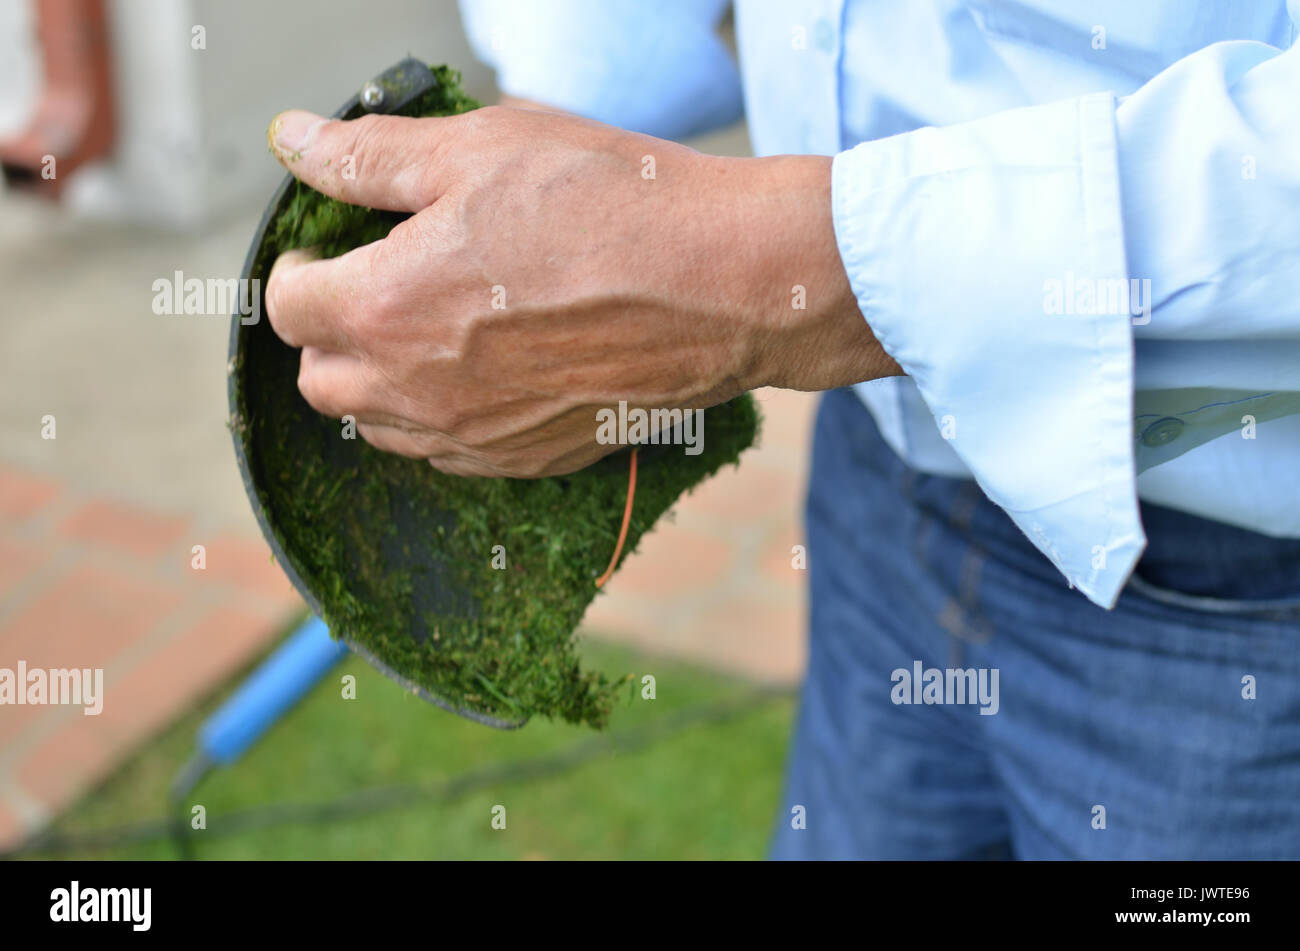 Strong man's hand cleaning lawn trimmer and taking grass out of it - Stock Image